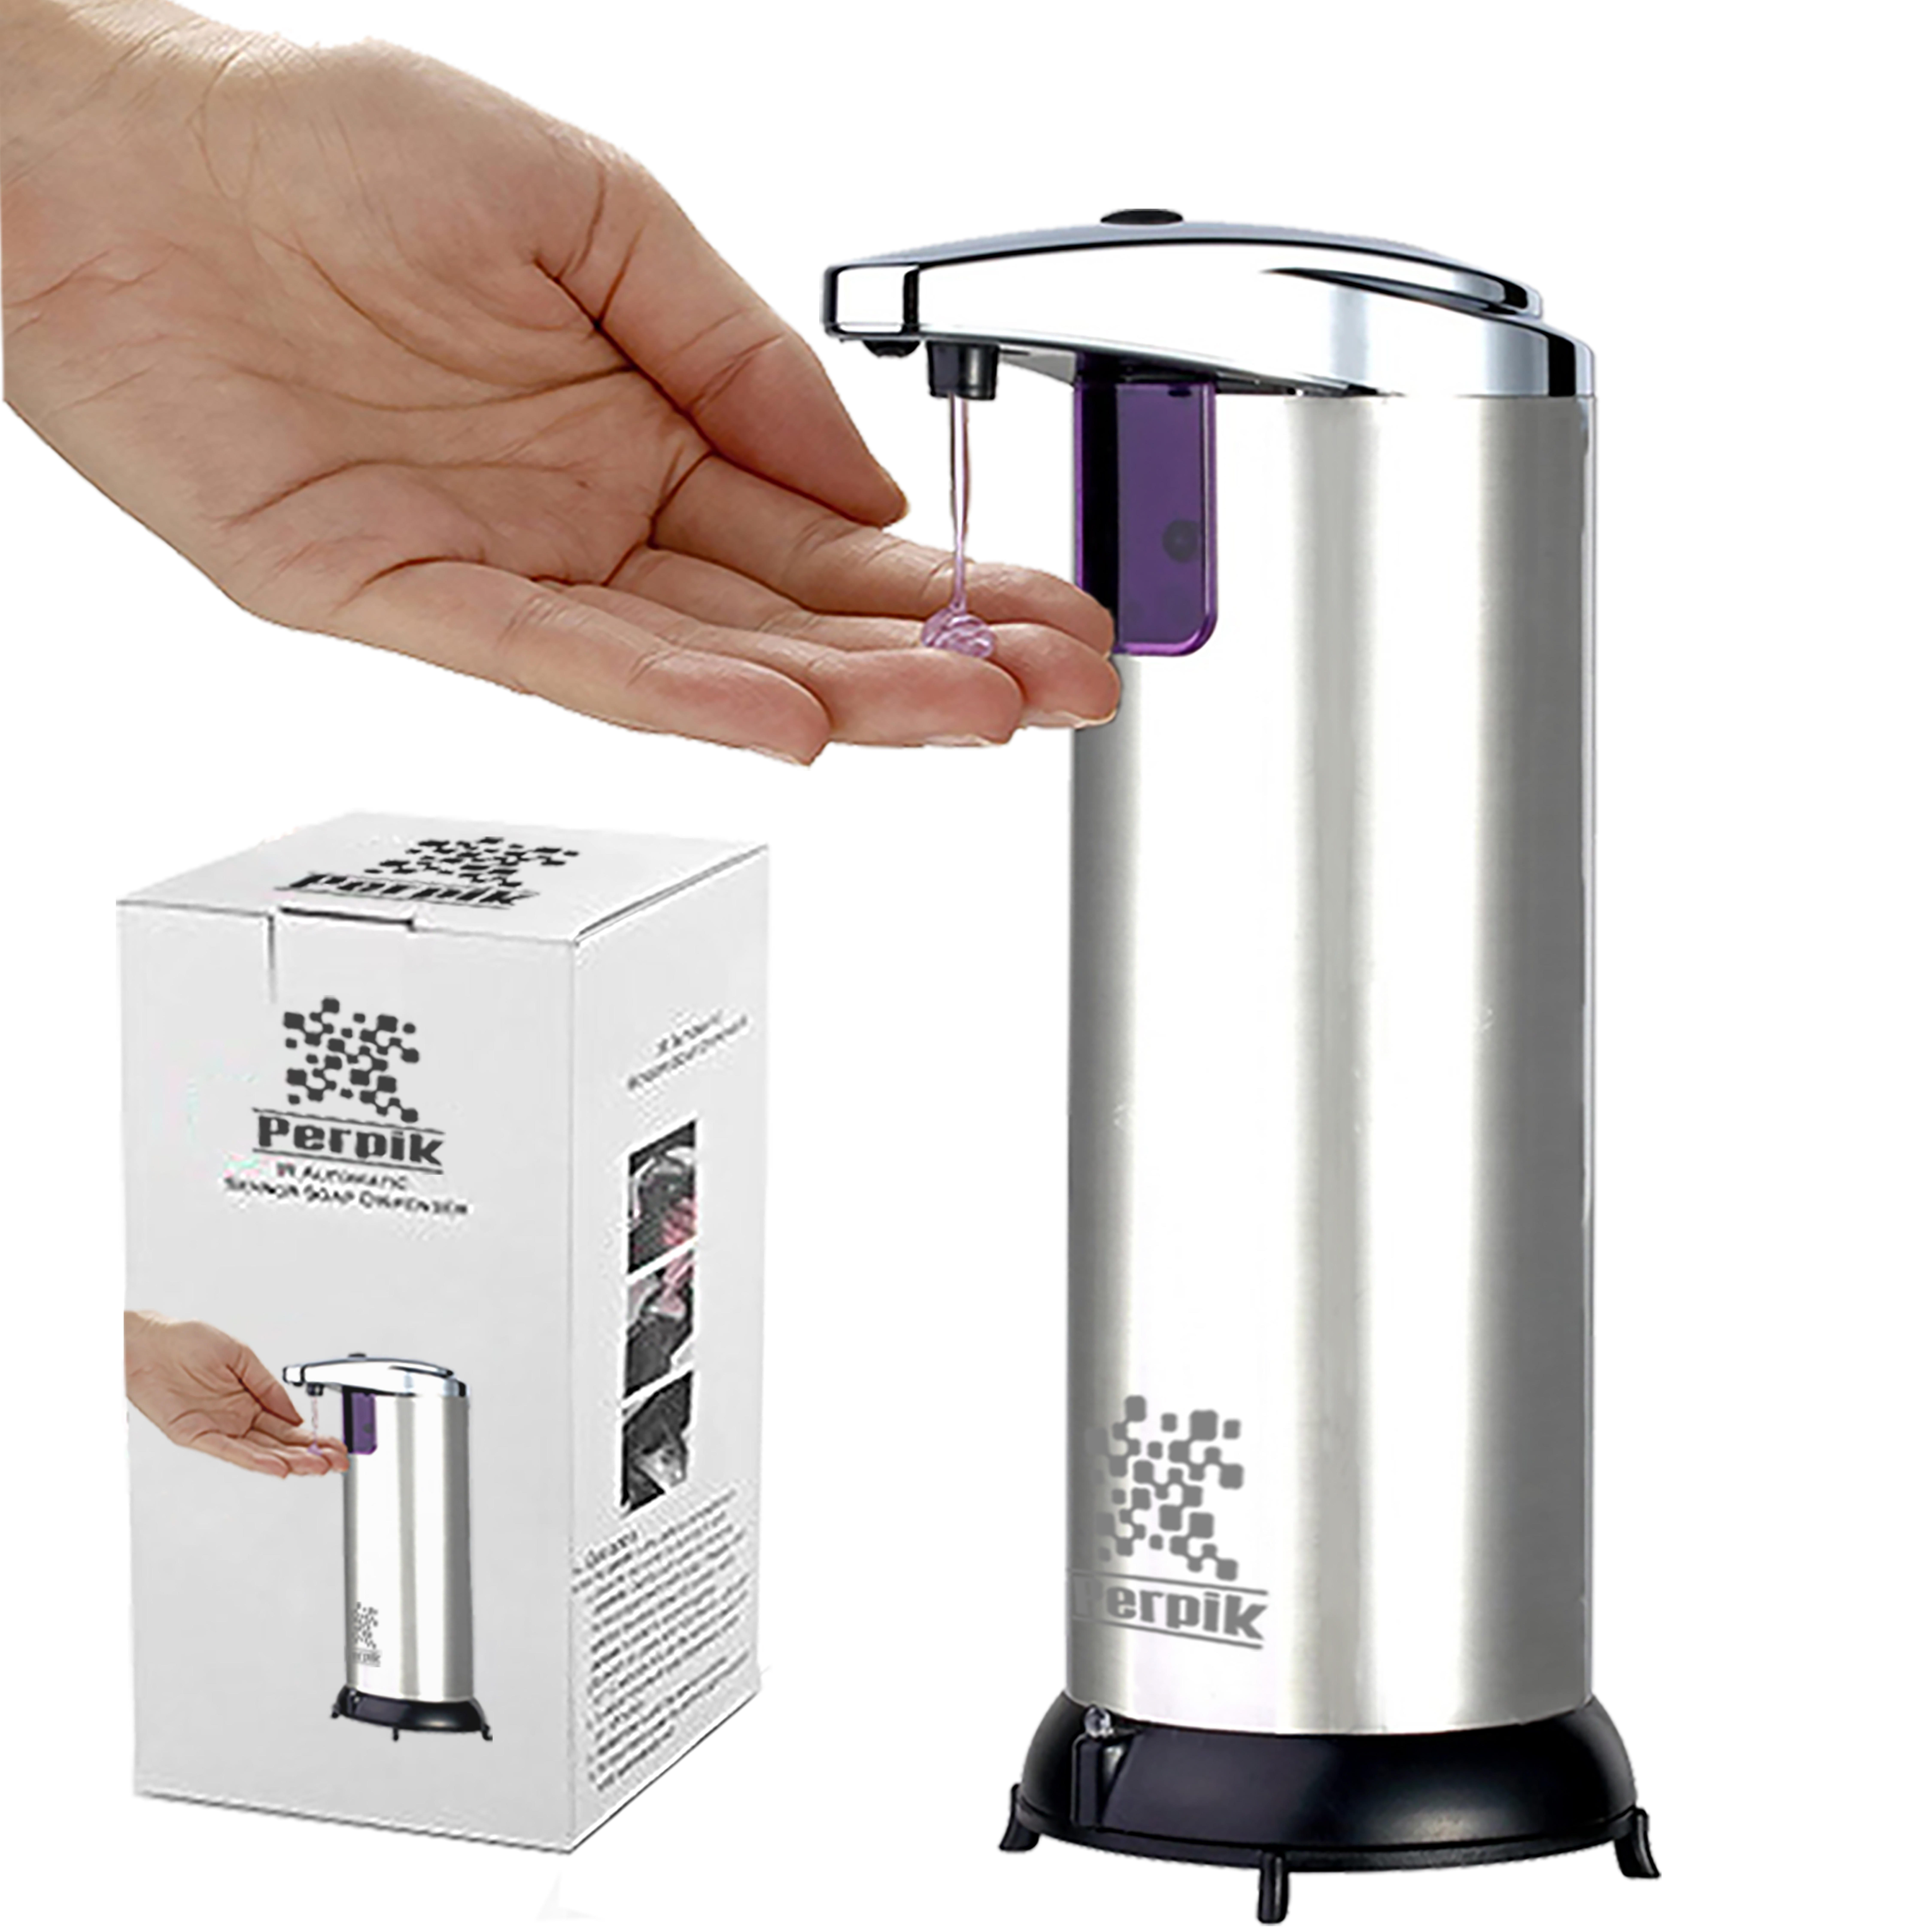 Perpik Announces Launch Of Premium Quality Touch Free Automatic Soap Dispenser For Kitchen And